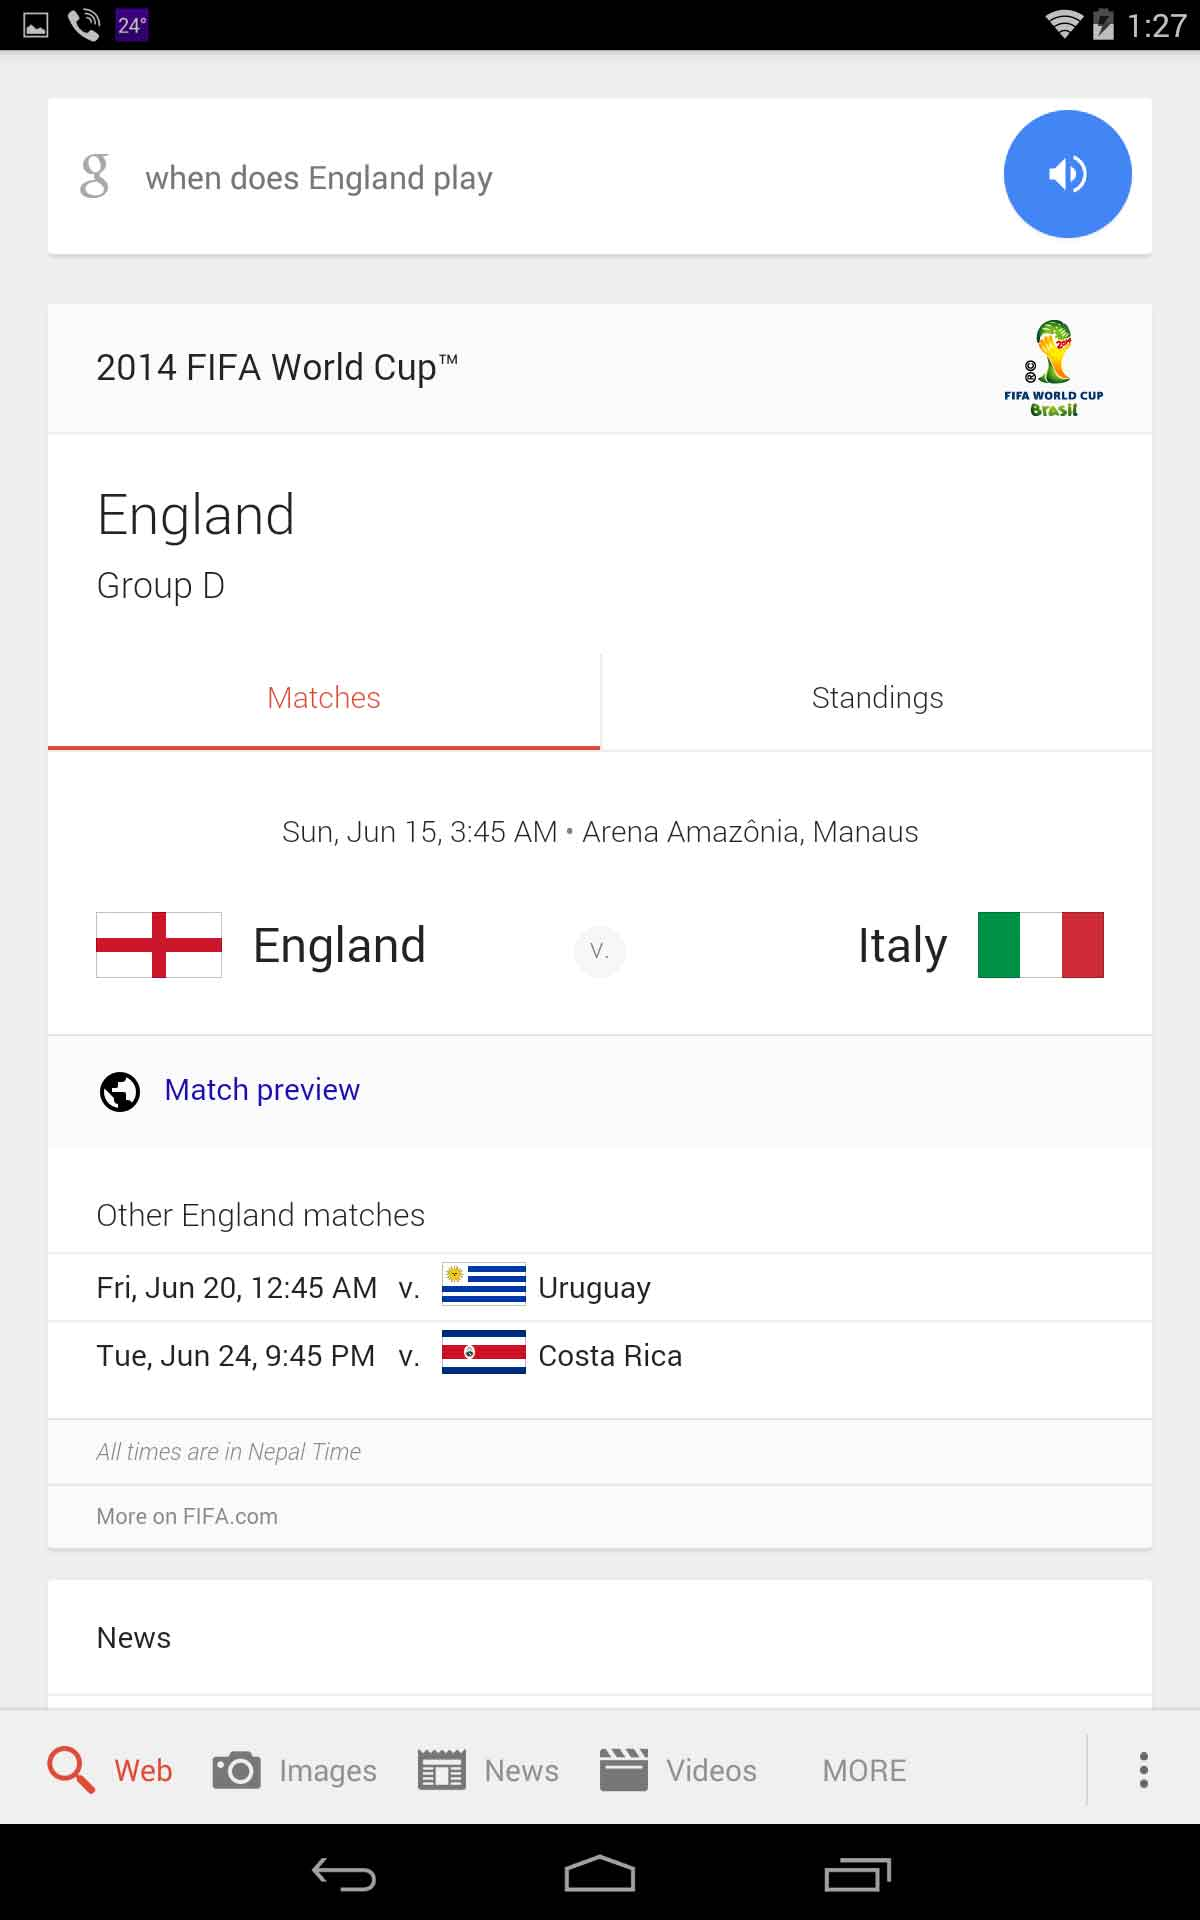 when does England play